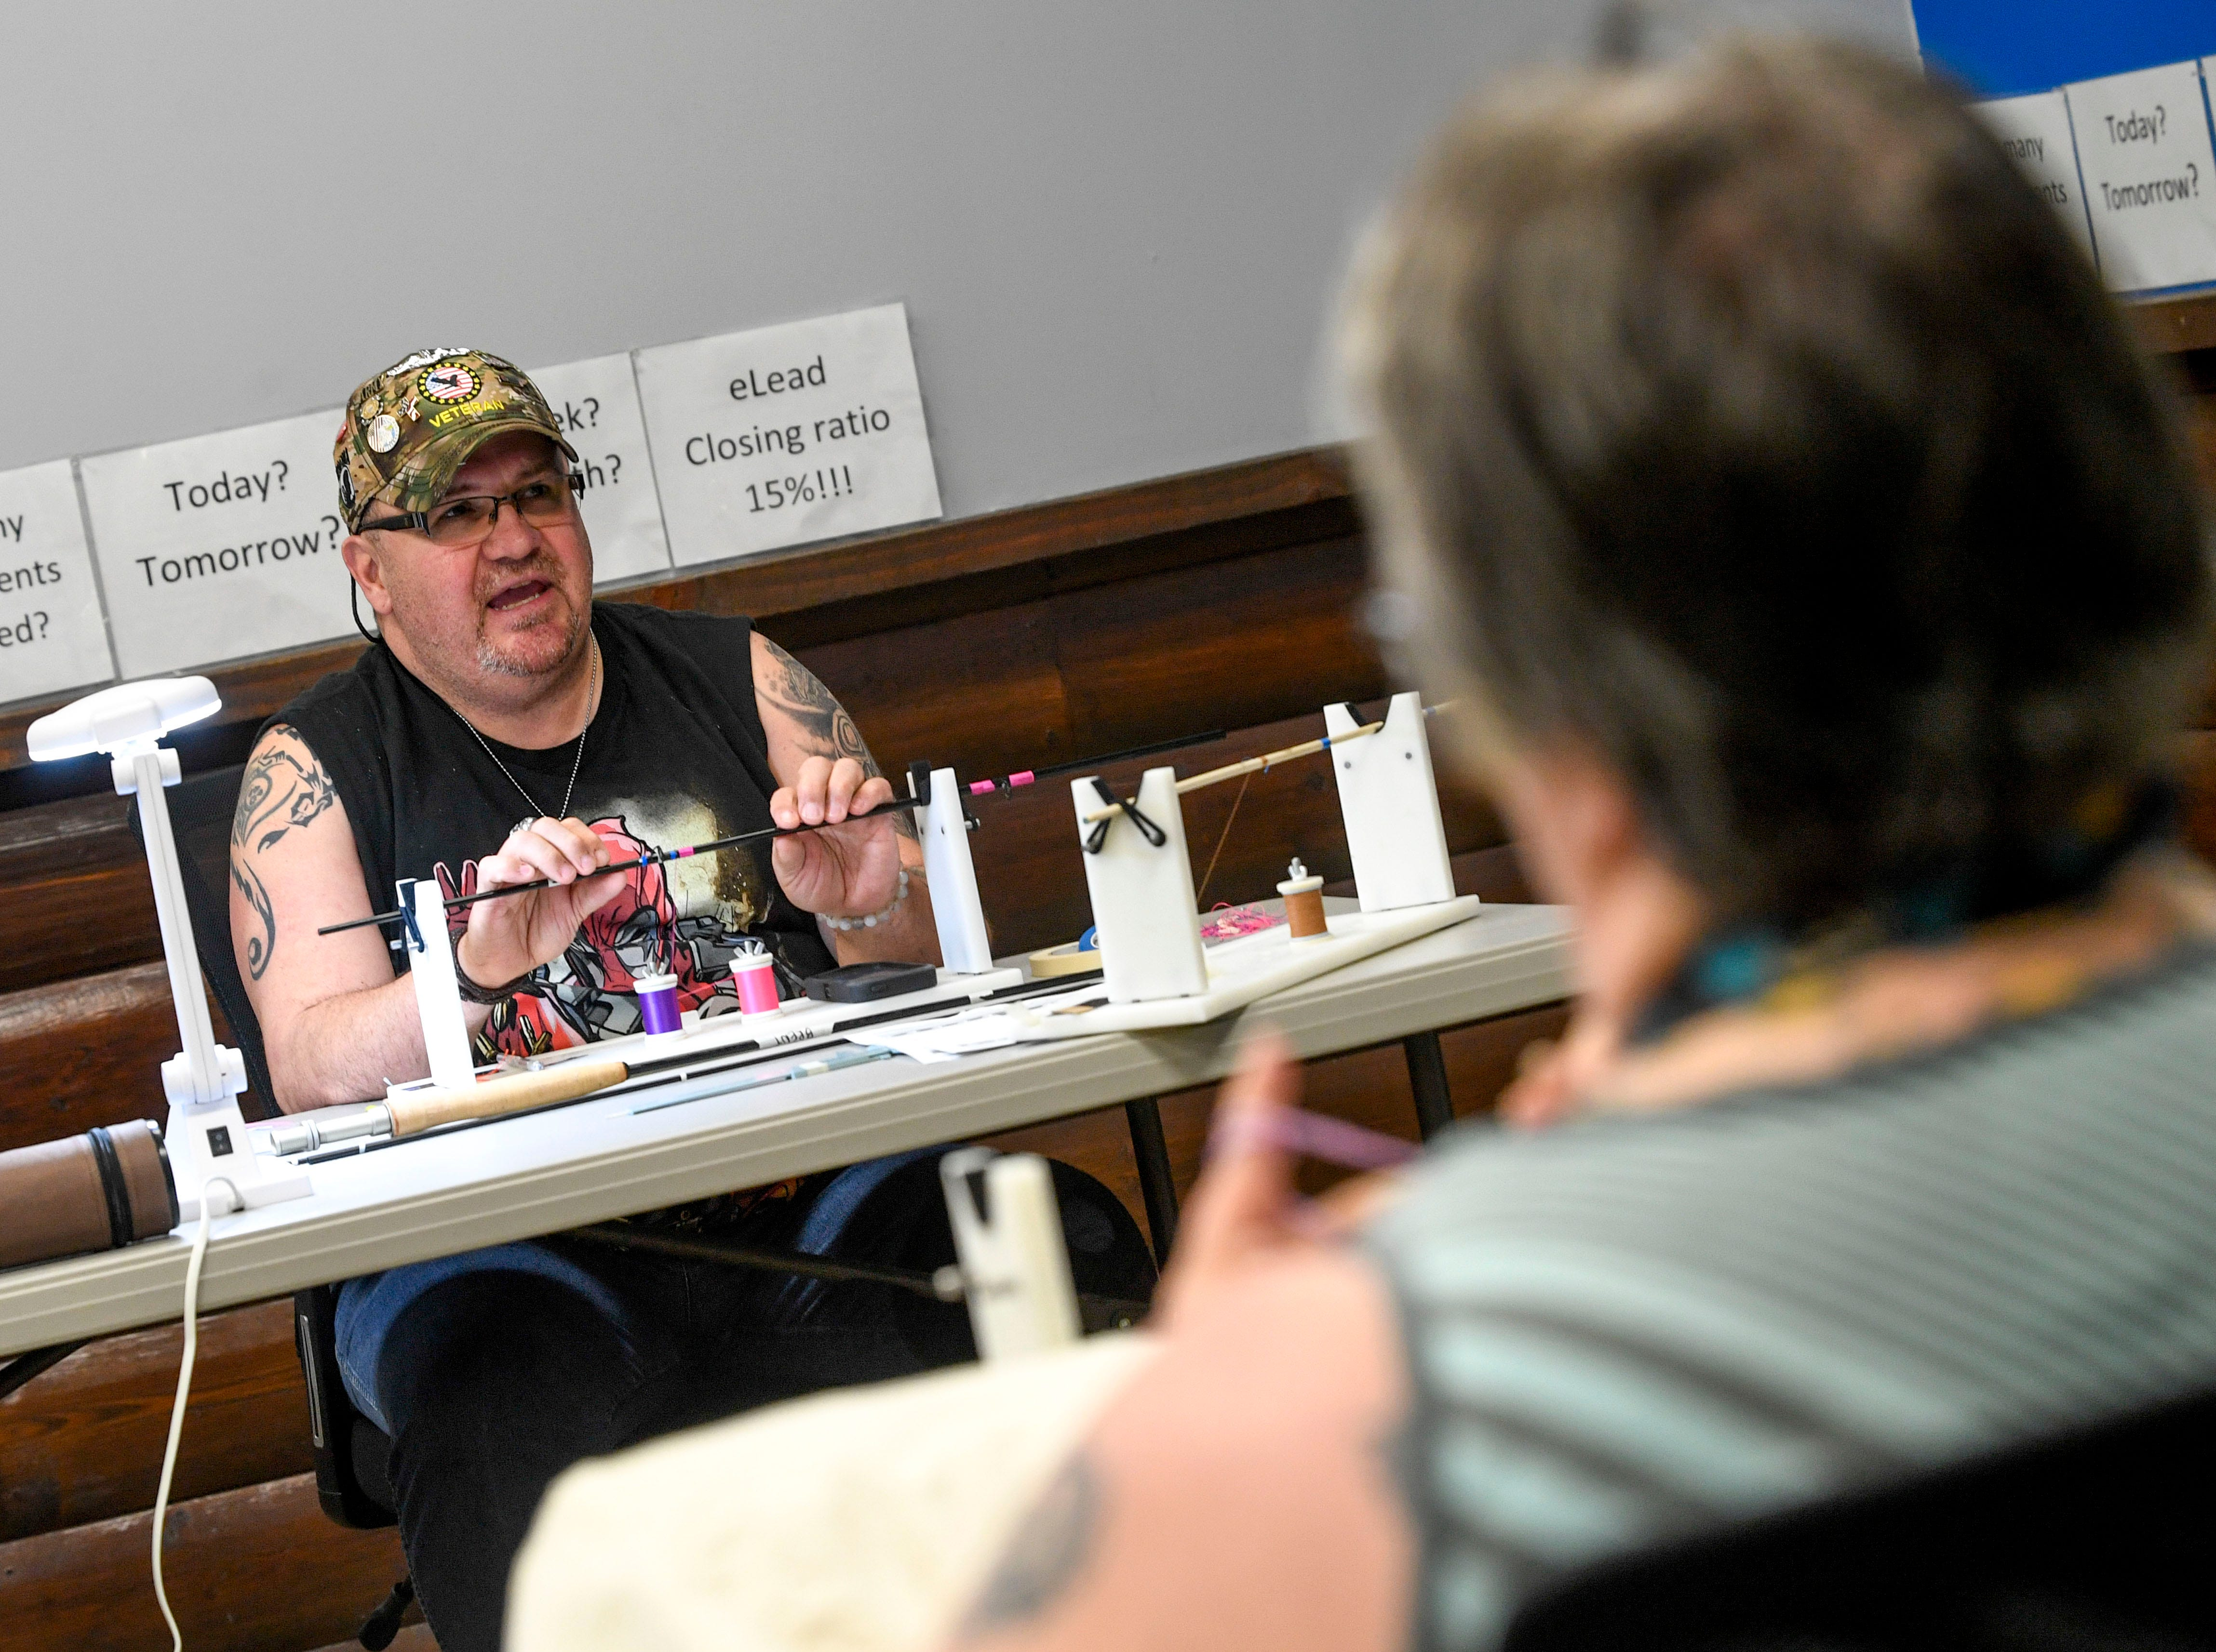 Brent Middleton, left, speaks with his wife, Wendy, about his life experiences while working on a fly fishing rod at Gander Outdoors in Jackson, Tenn., on Wednesday, Feb. 6, 2019.